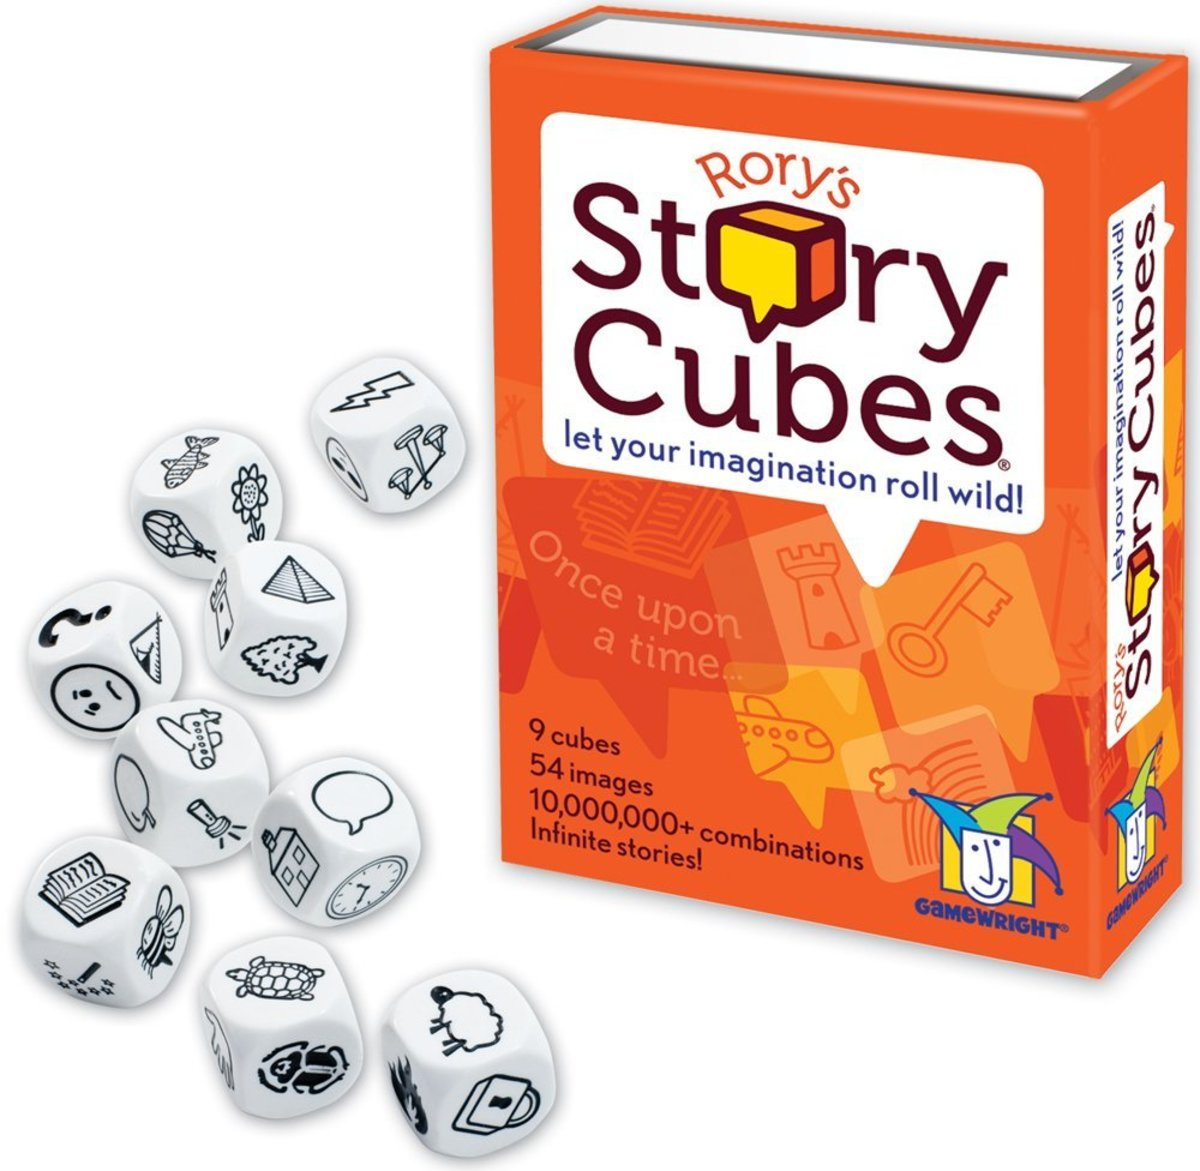 awesome stocking stuffers Rory's Story Cubes